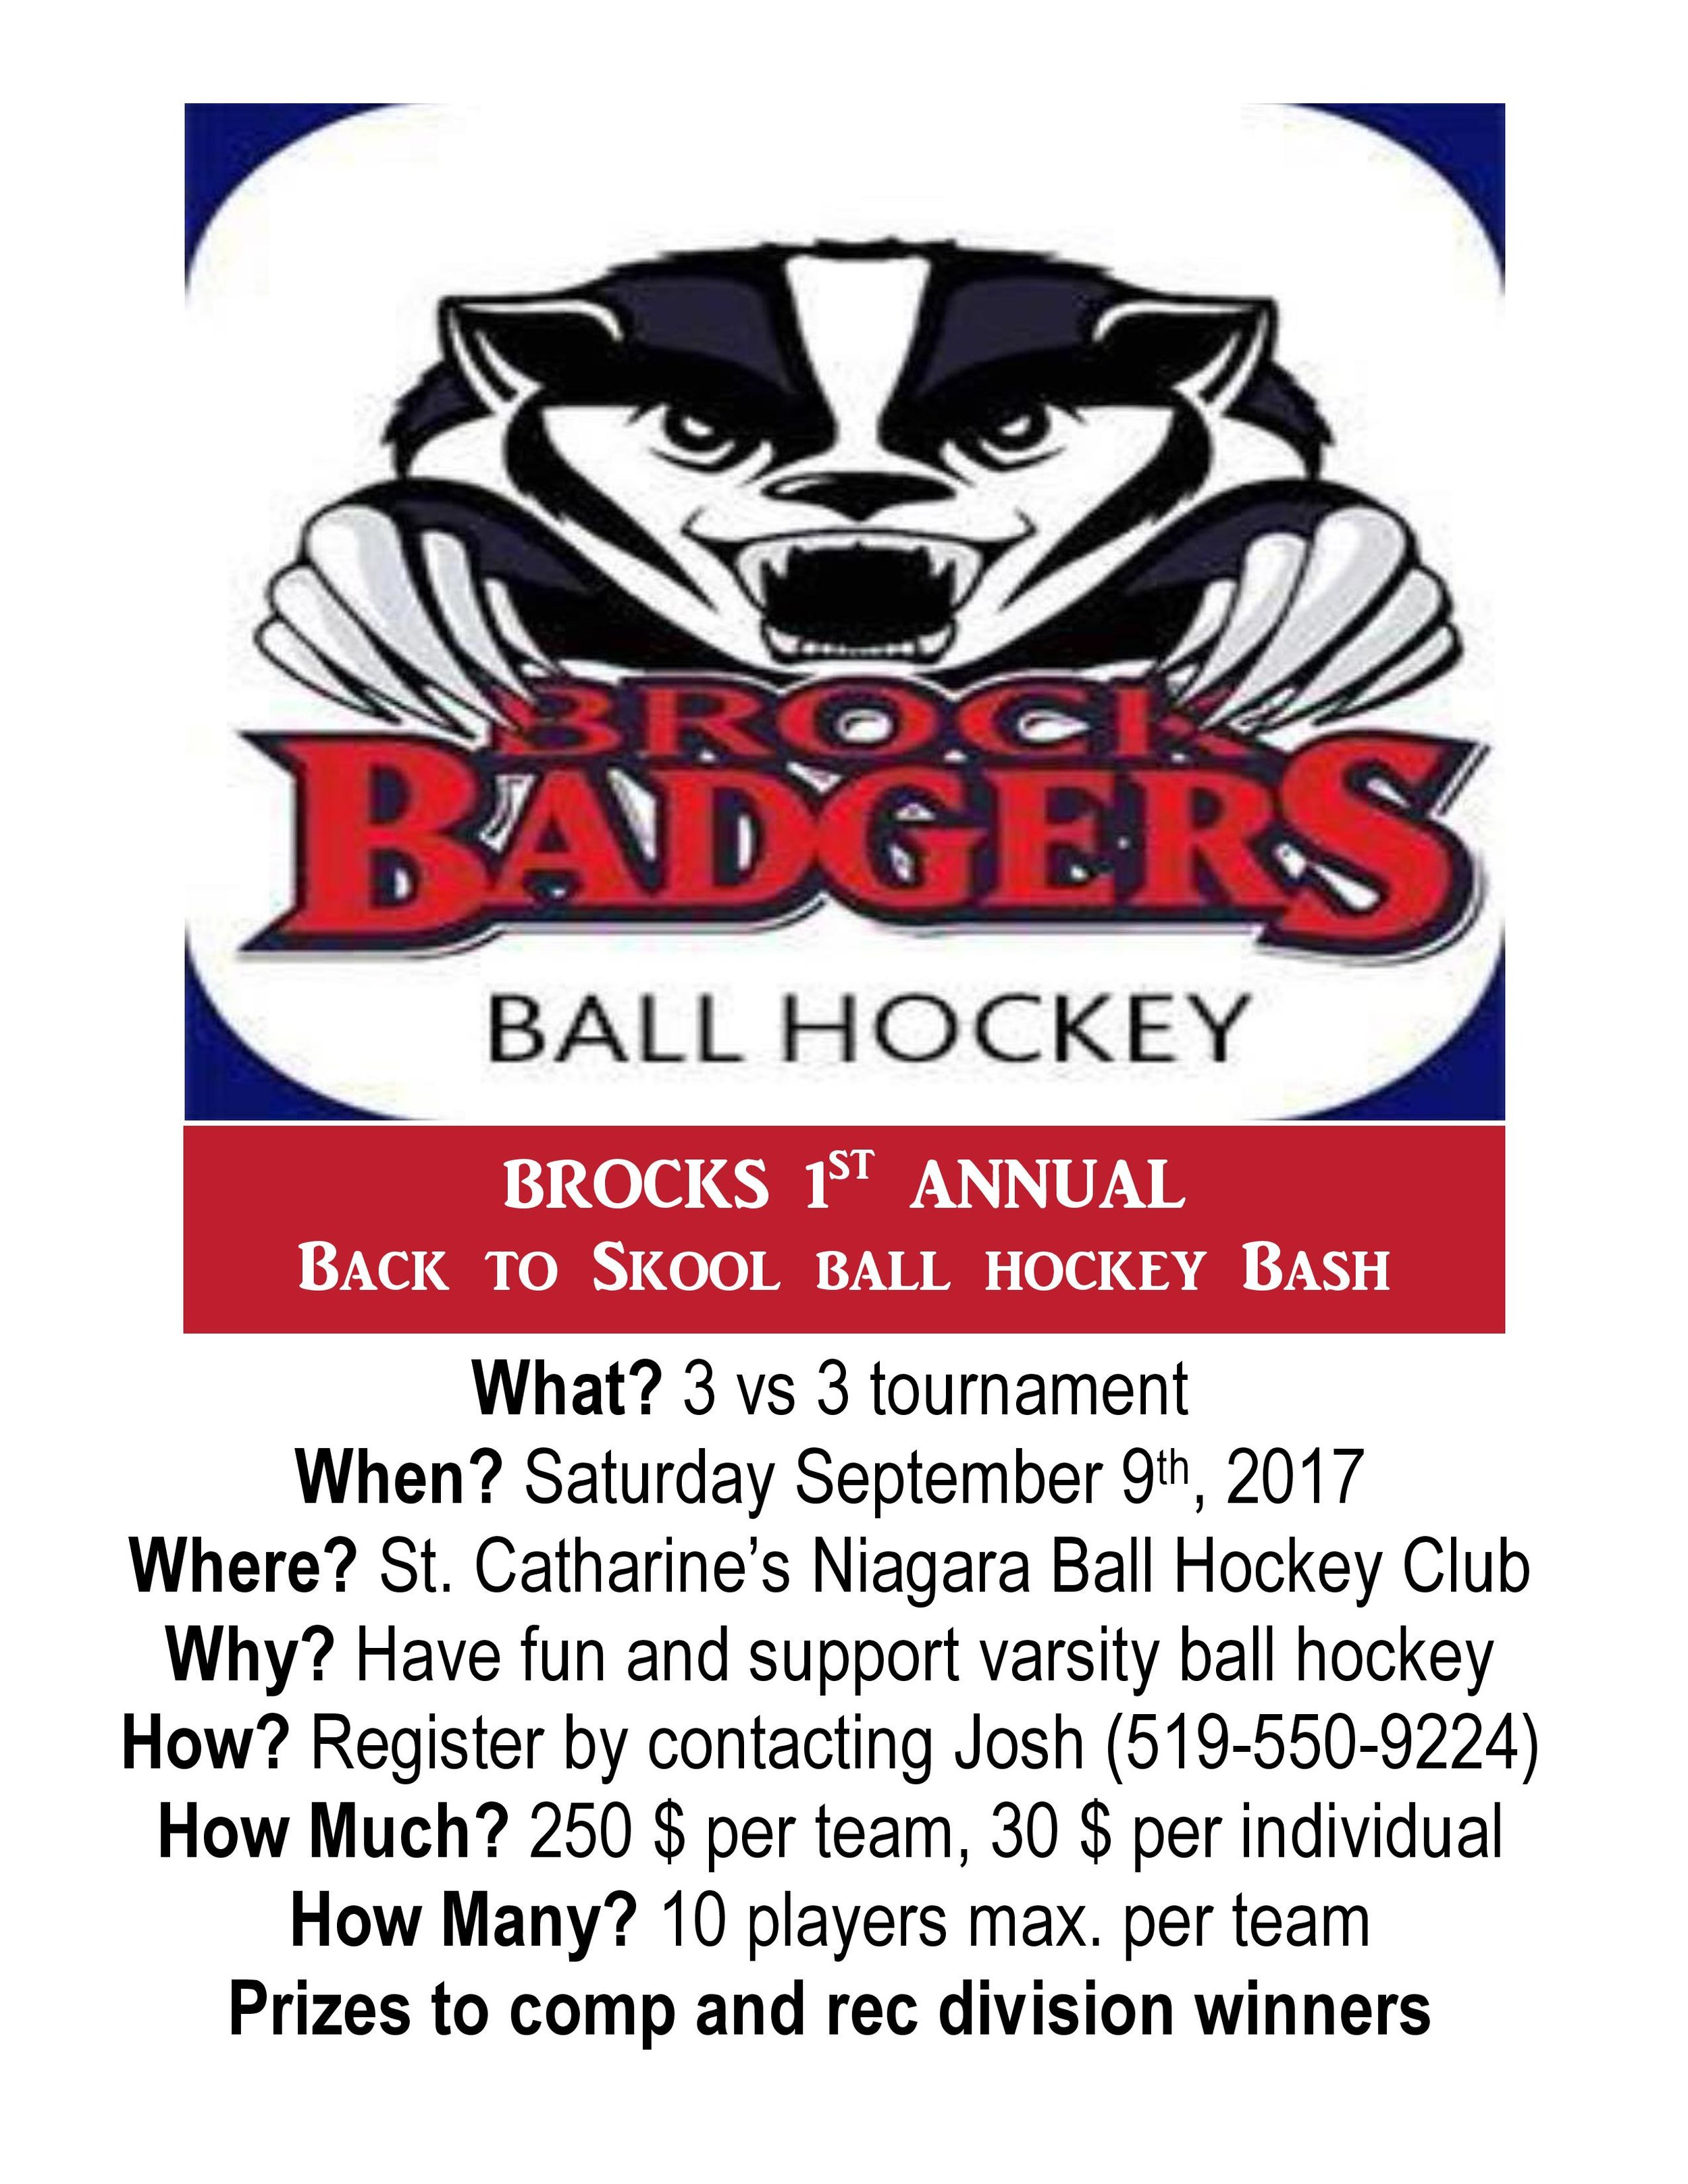 Ball hockey flyer rene edit-page-001.jpg